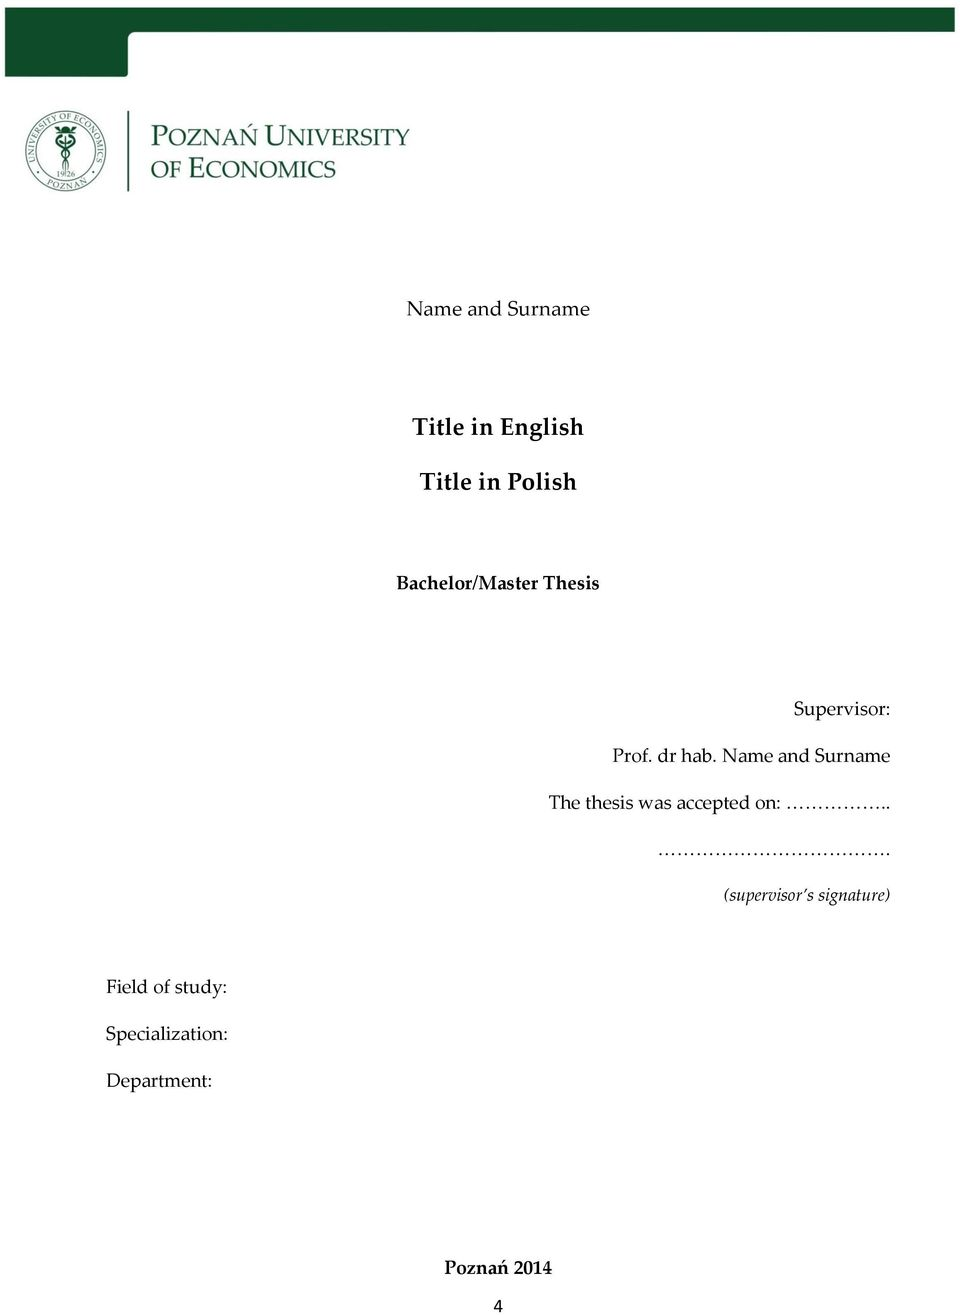 Name and Surname The thesis was accepted on:.